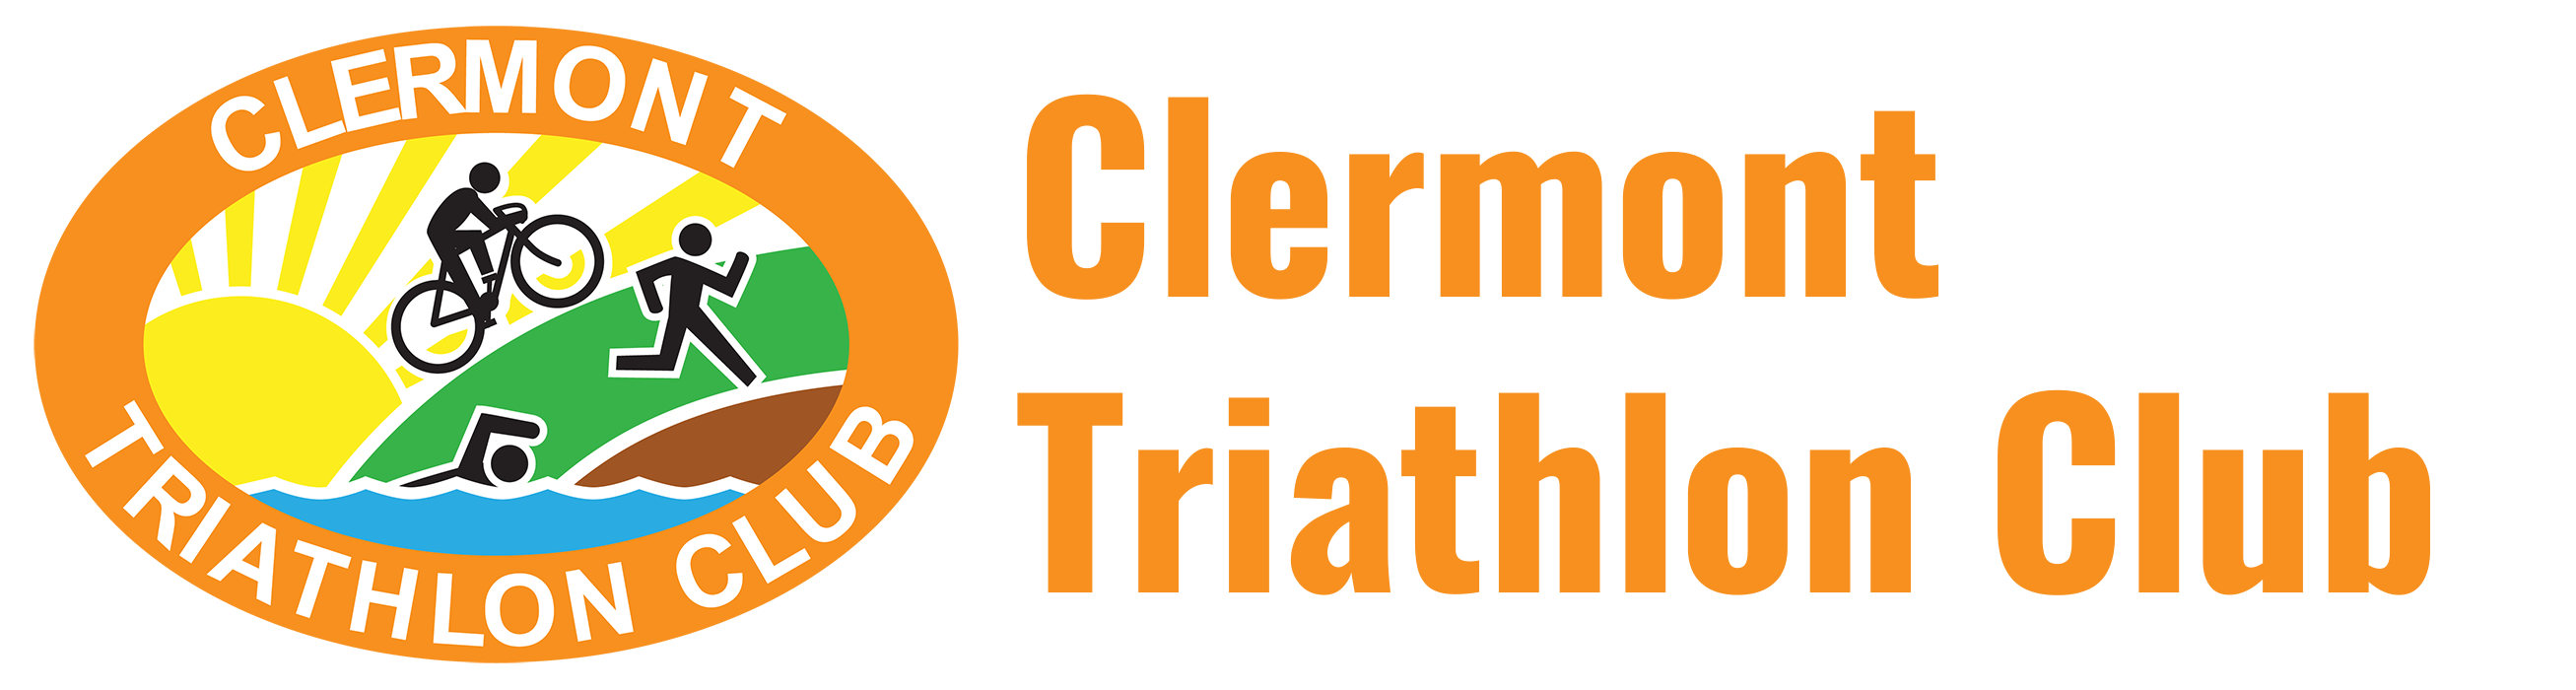 Clermont Triathlon Club